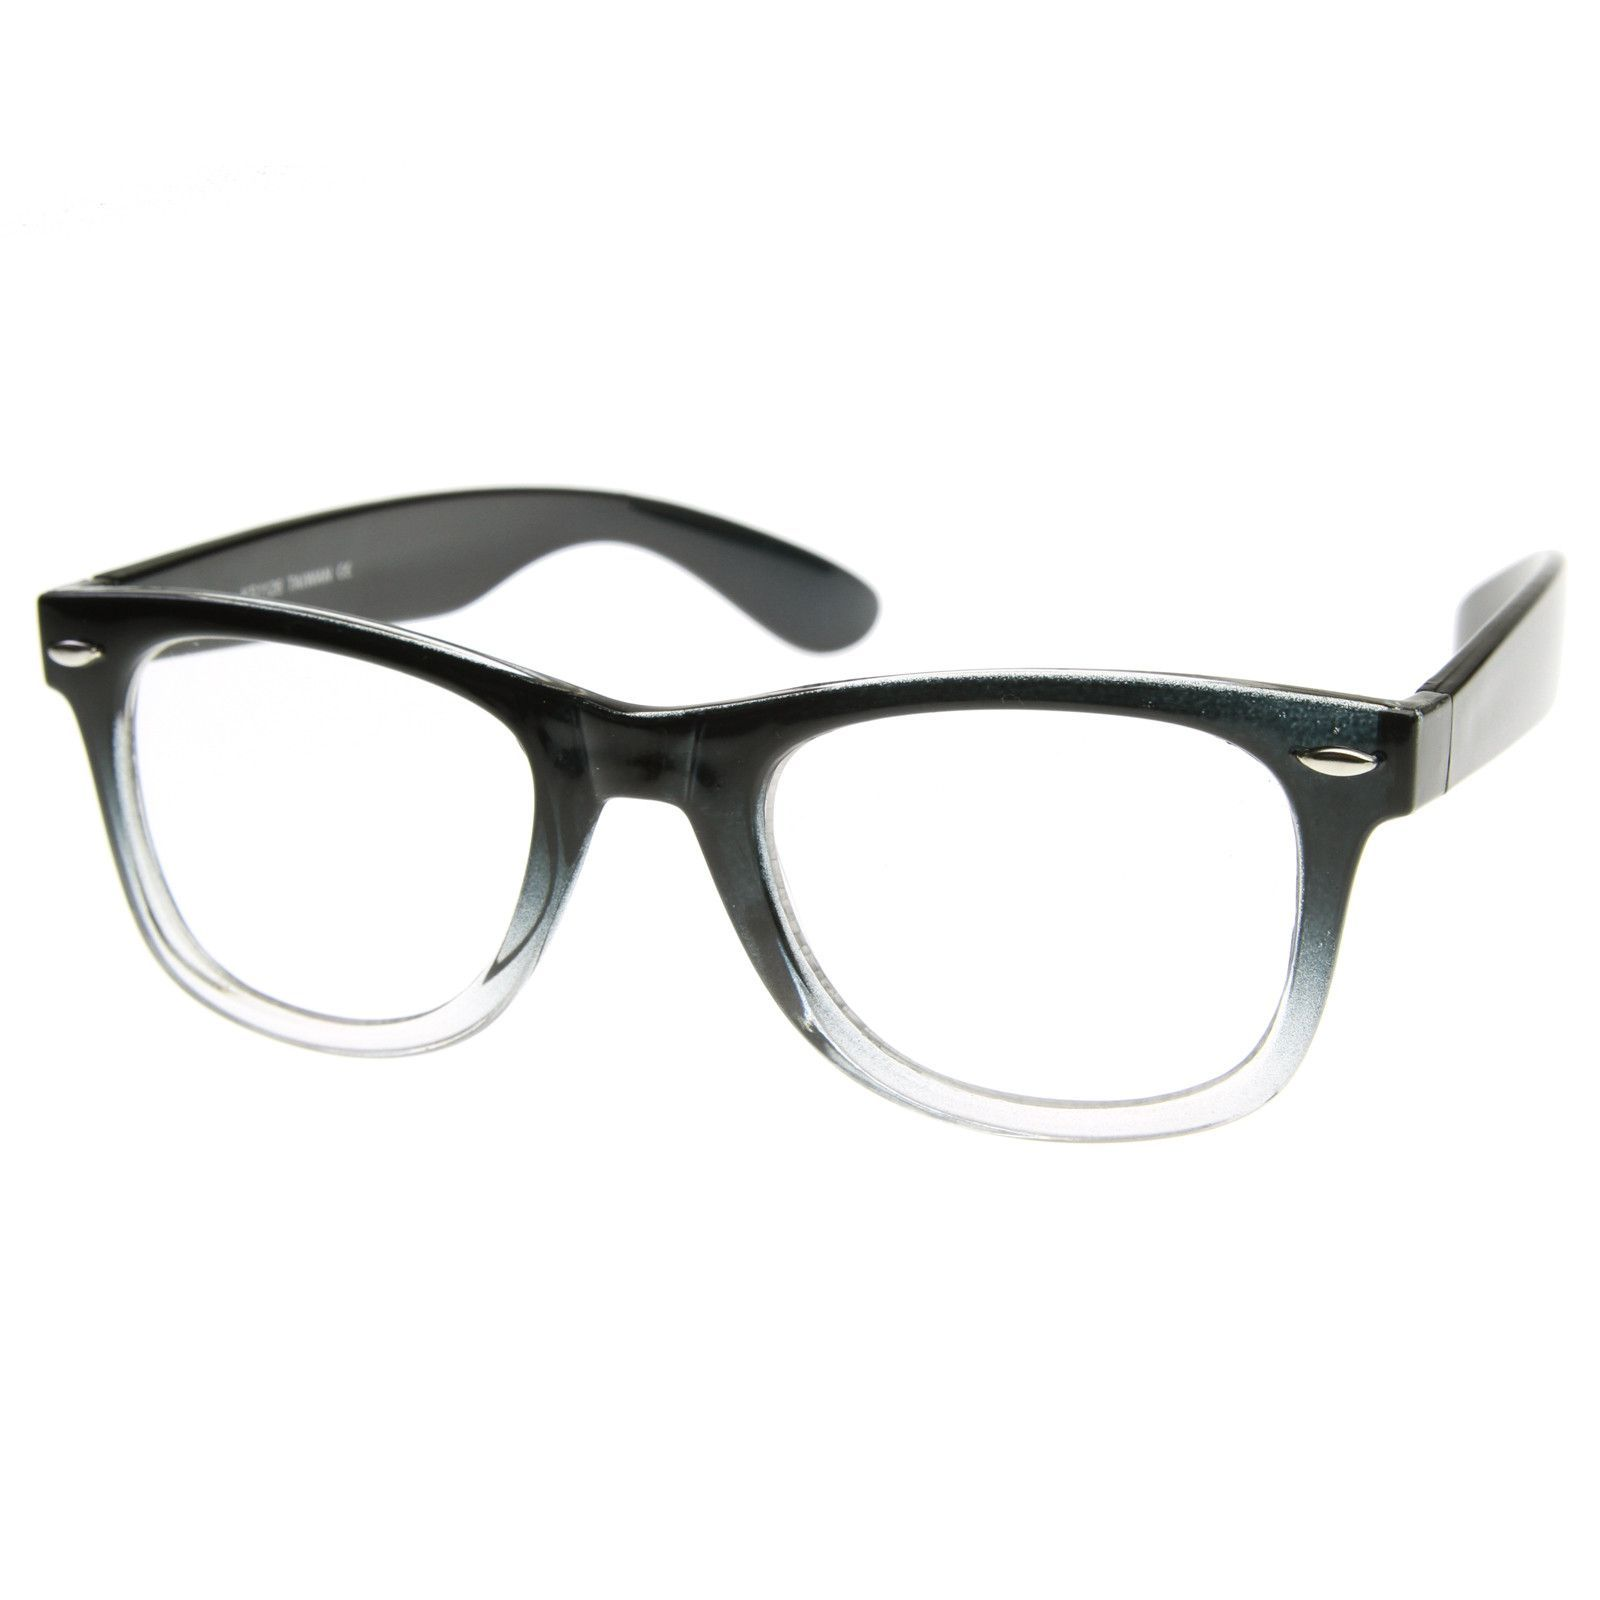 6a1bf13e6873 Popular retro two tone clear faded horned rim clear lens glasses. Popular  during…